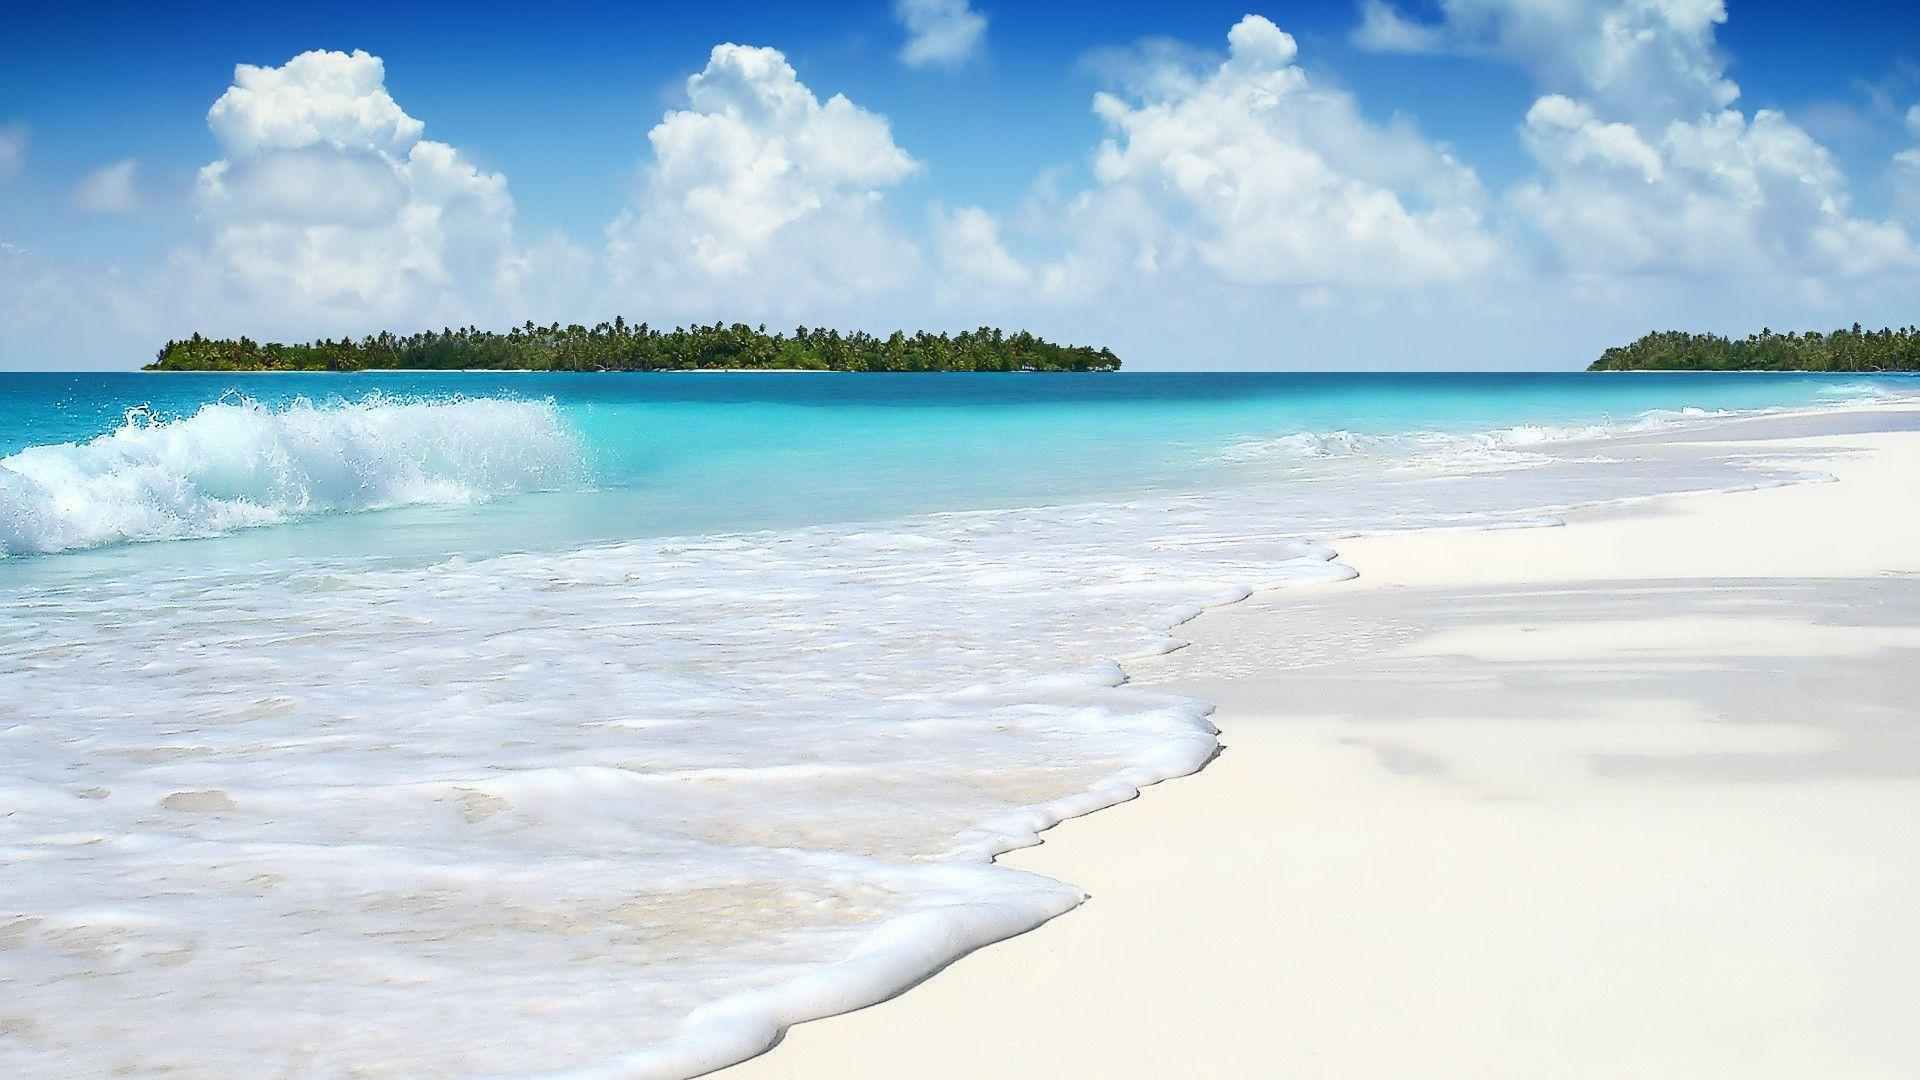 Beach Desktop Wallpaper Widescreen: 3D Beach Wallpapers